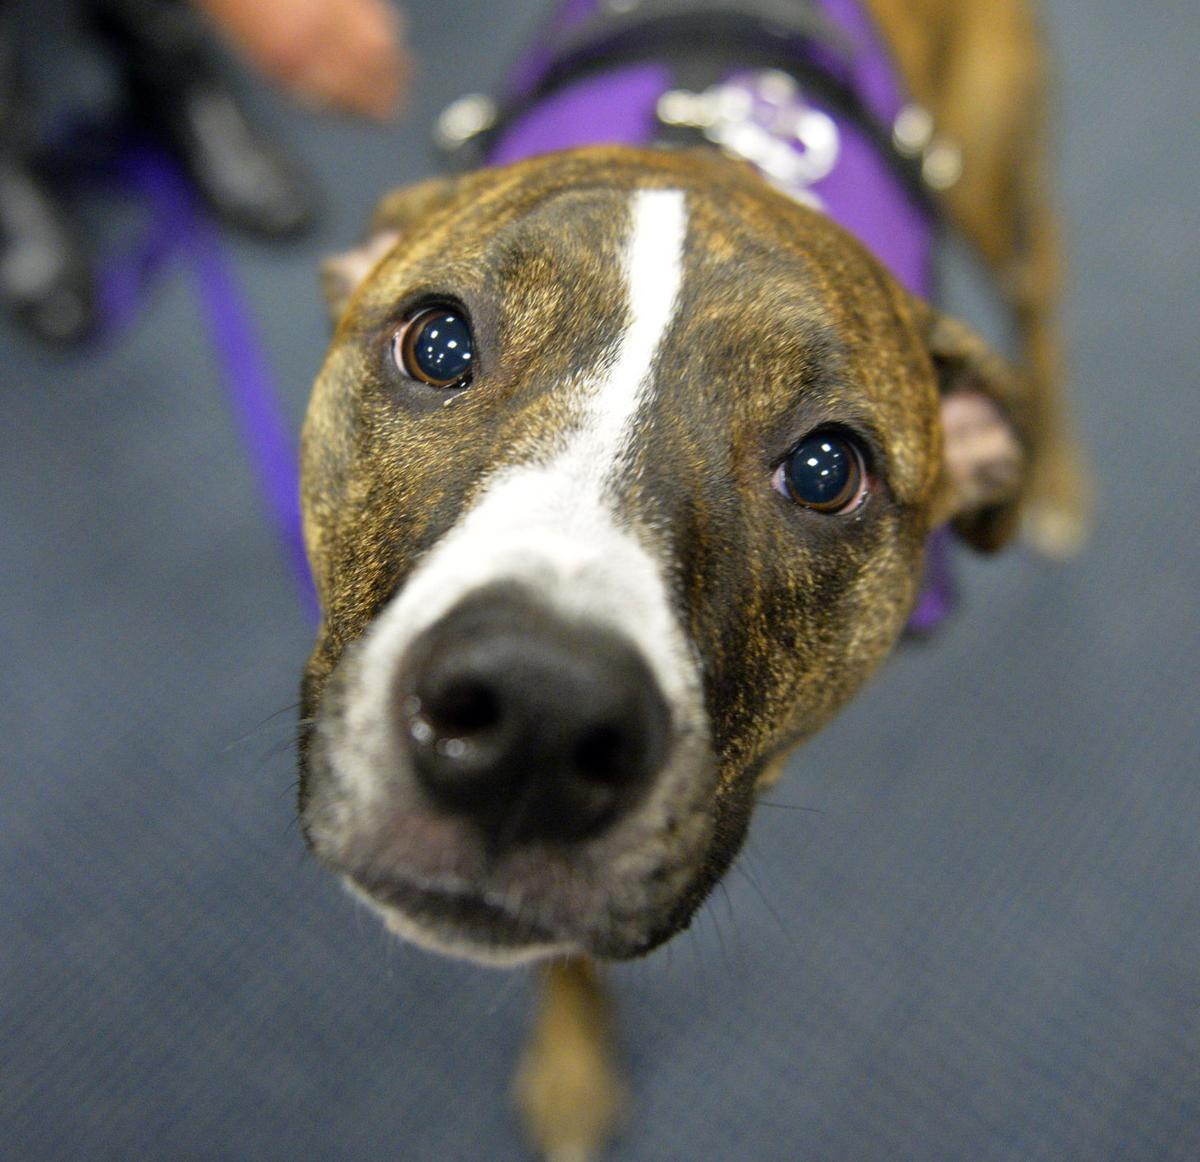 She's here to help: Williamson County therapy dog brings comfort to